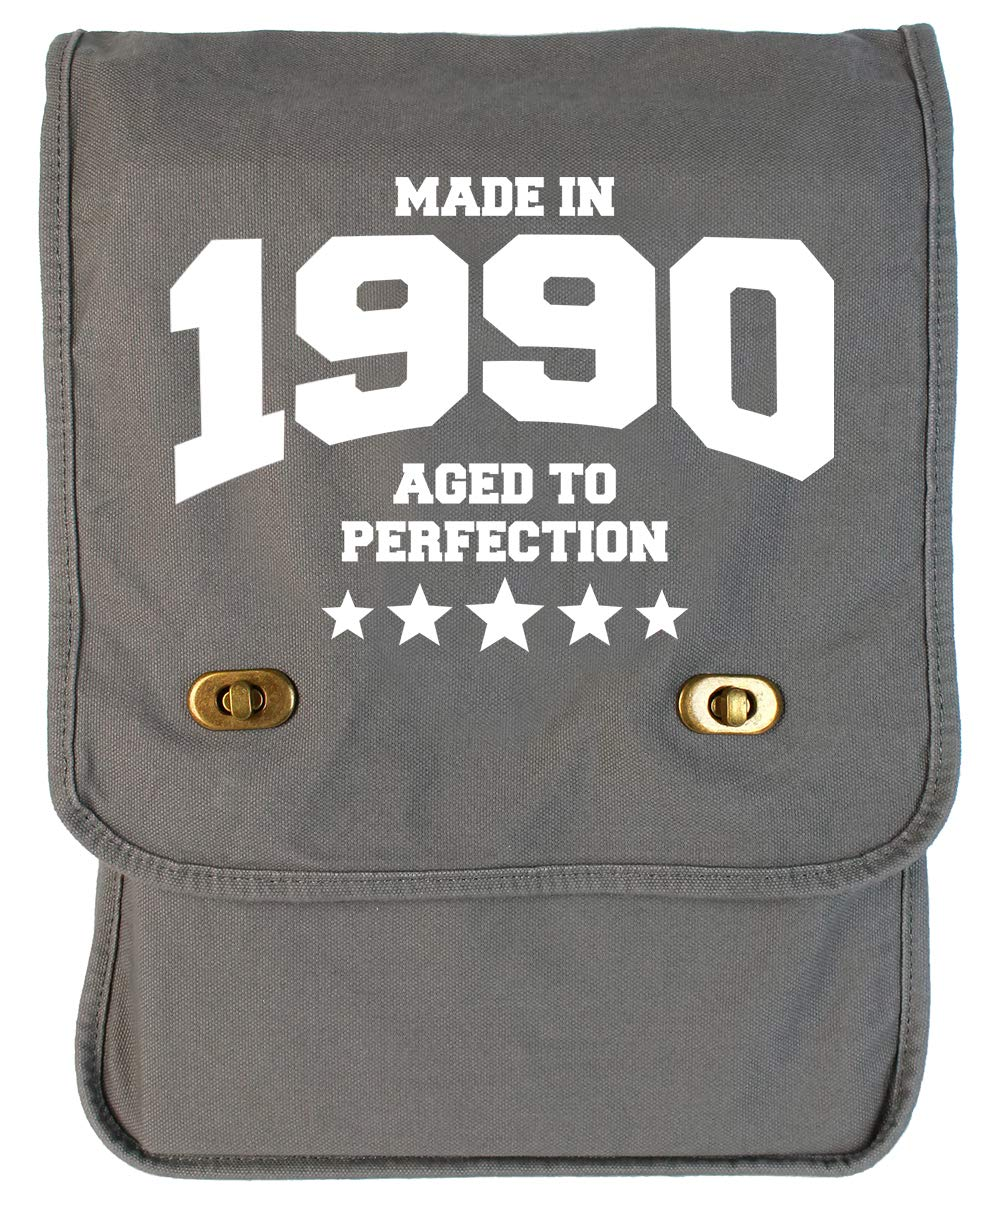 1990 Grey Brushed Canvas Messenger Bag Tenacitee Athletic Aged to Perfection